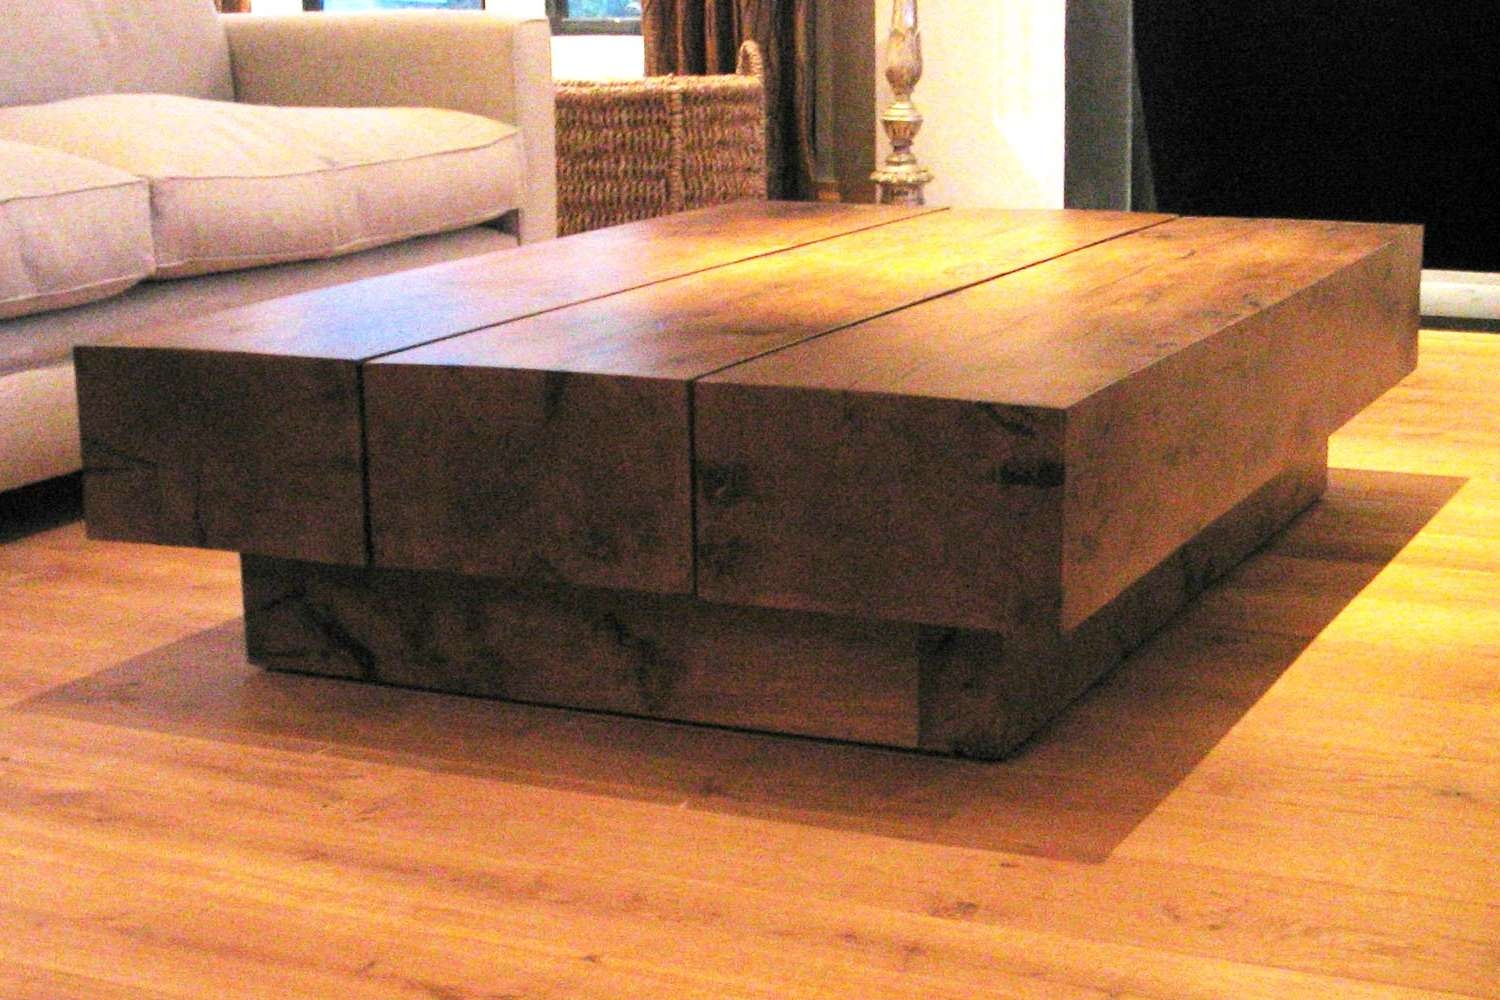 Ross Langley Bespoke Furniture And Joinery With Most Recent Bespoke Coffee Tables (View 7 of 20)